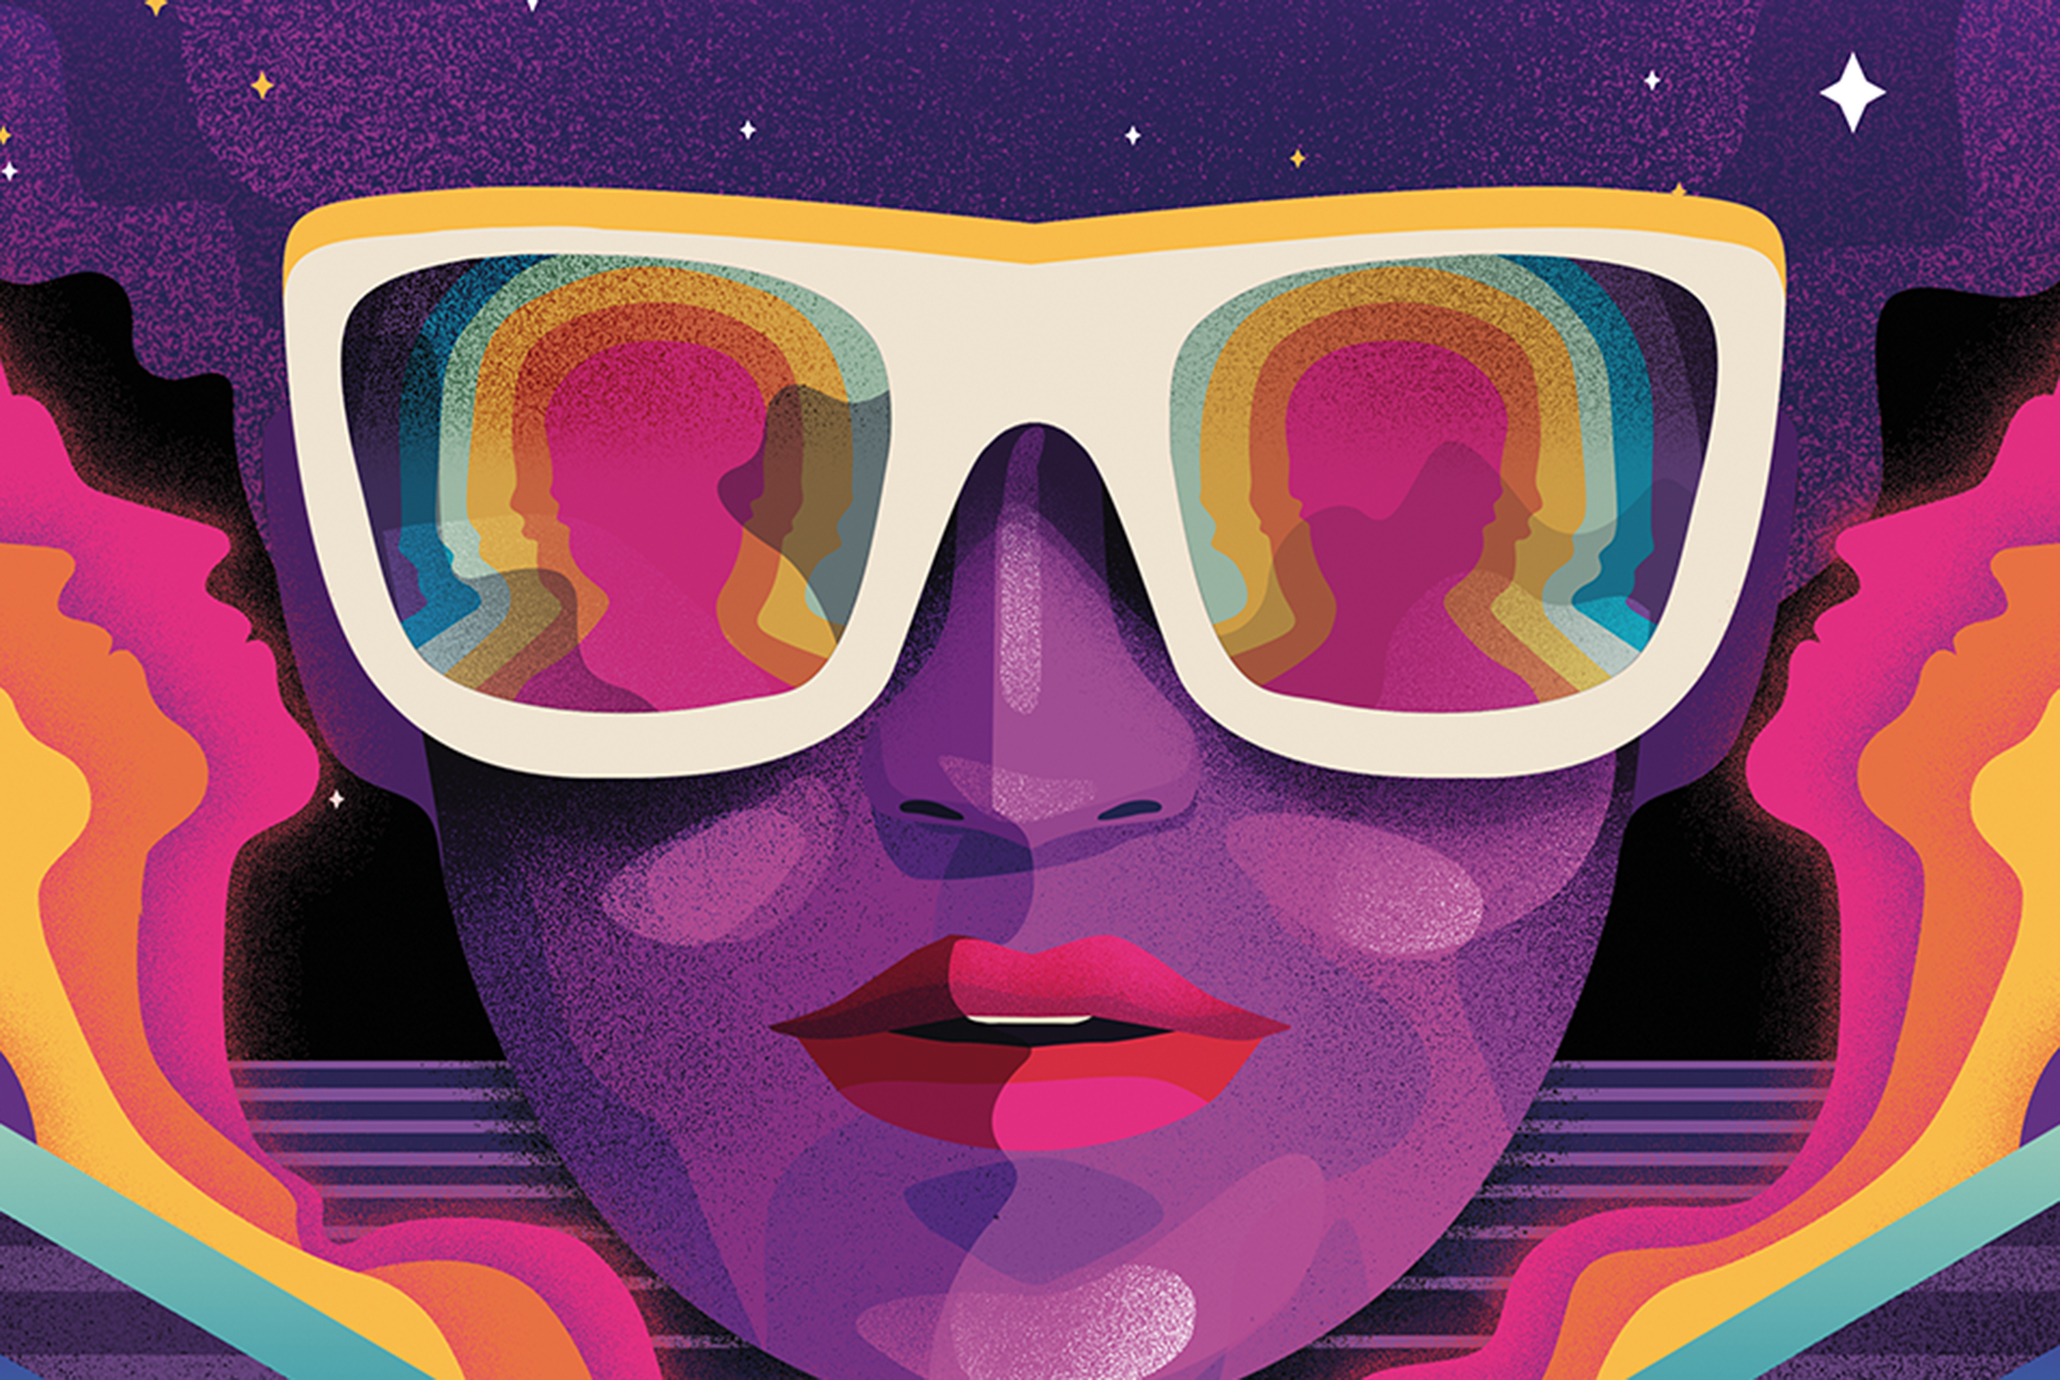 Key art for the cover of Dream Crush, a new dating game from Mondo Games, shows a 1980s inspired image of a woman wearing sunglasses.